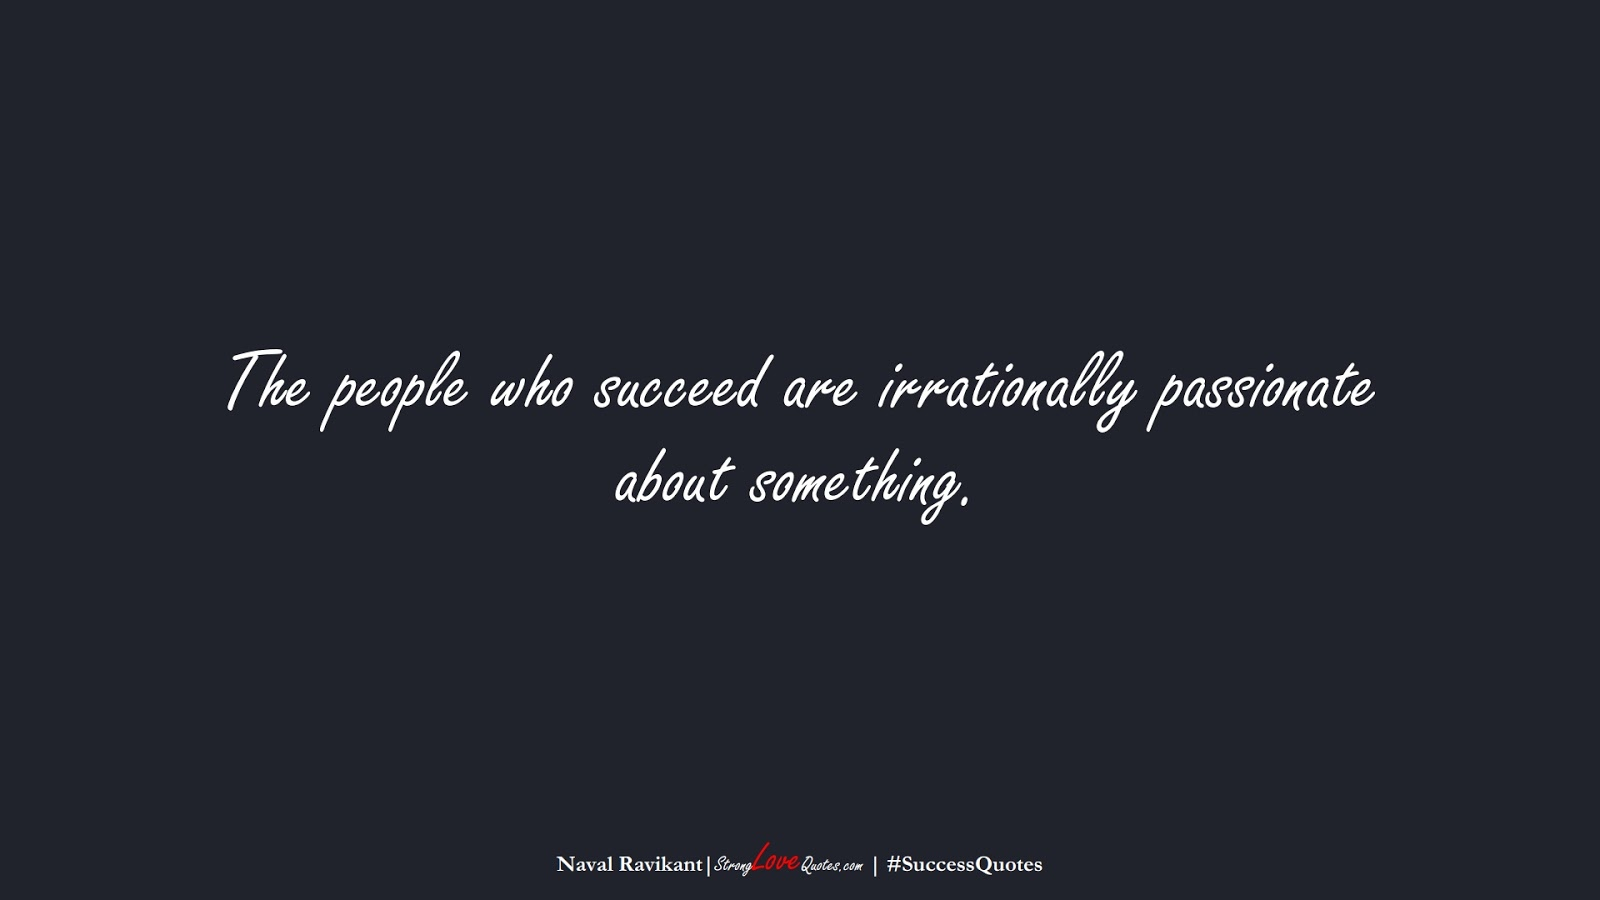 The people who succeed are irrationally passionate about something. (Naval Ravikant);  #SuccessQuotes